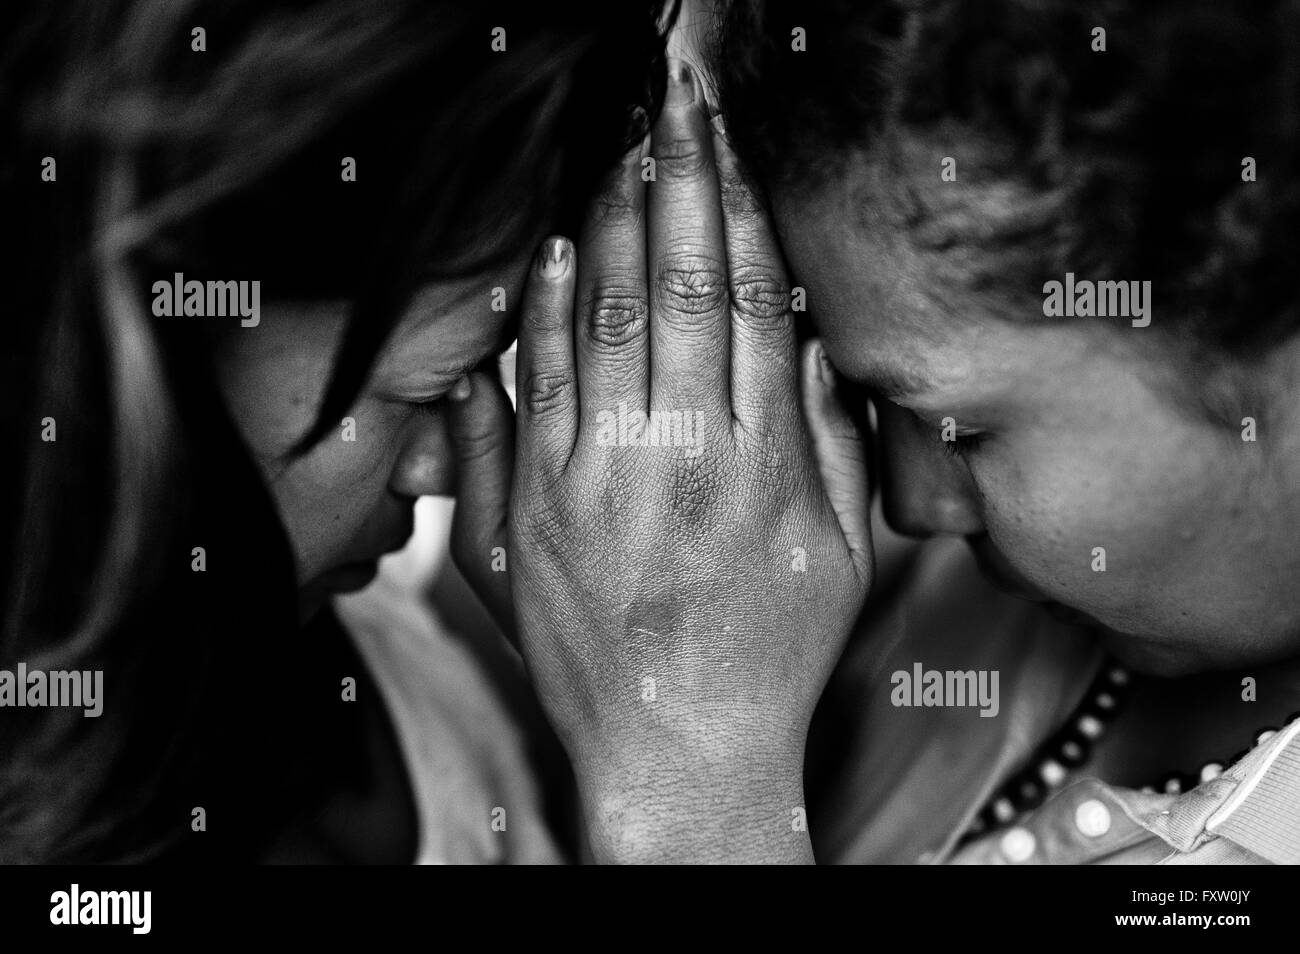 Colombian women, having joined hands, pray during the religious ceremony performed at a house church in Bogota, - Stock Image